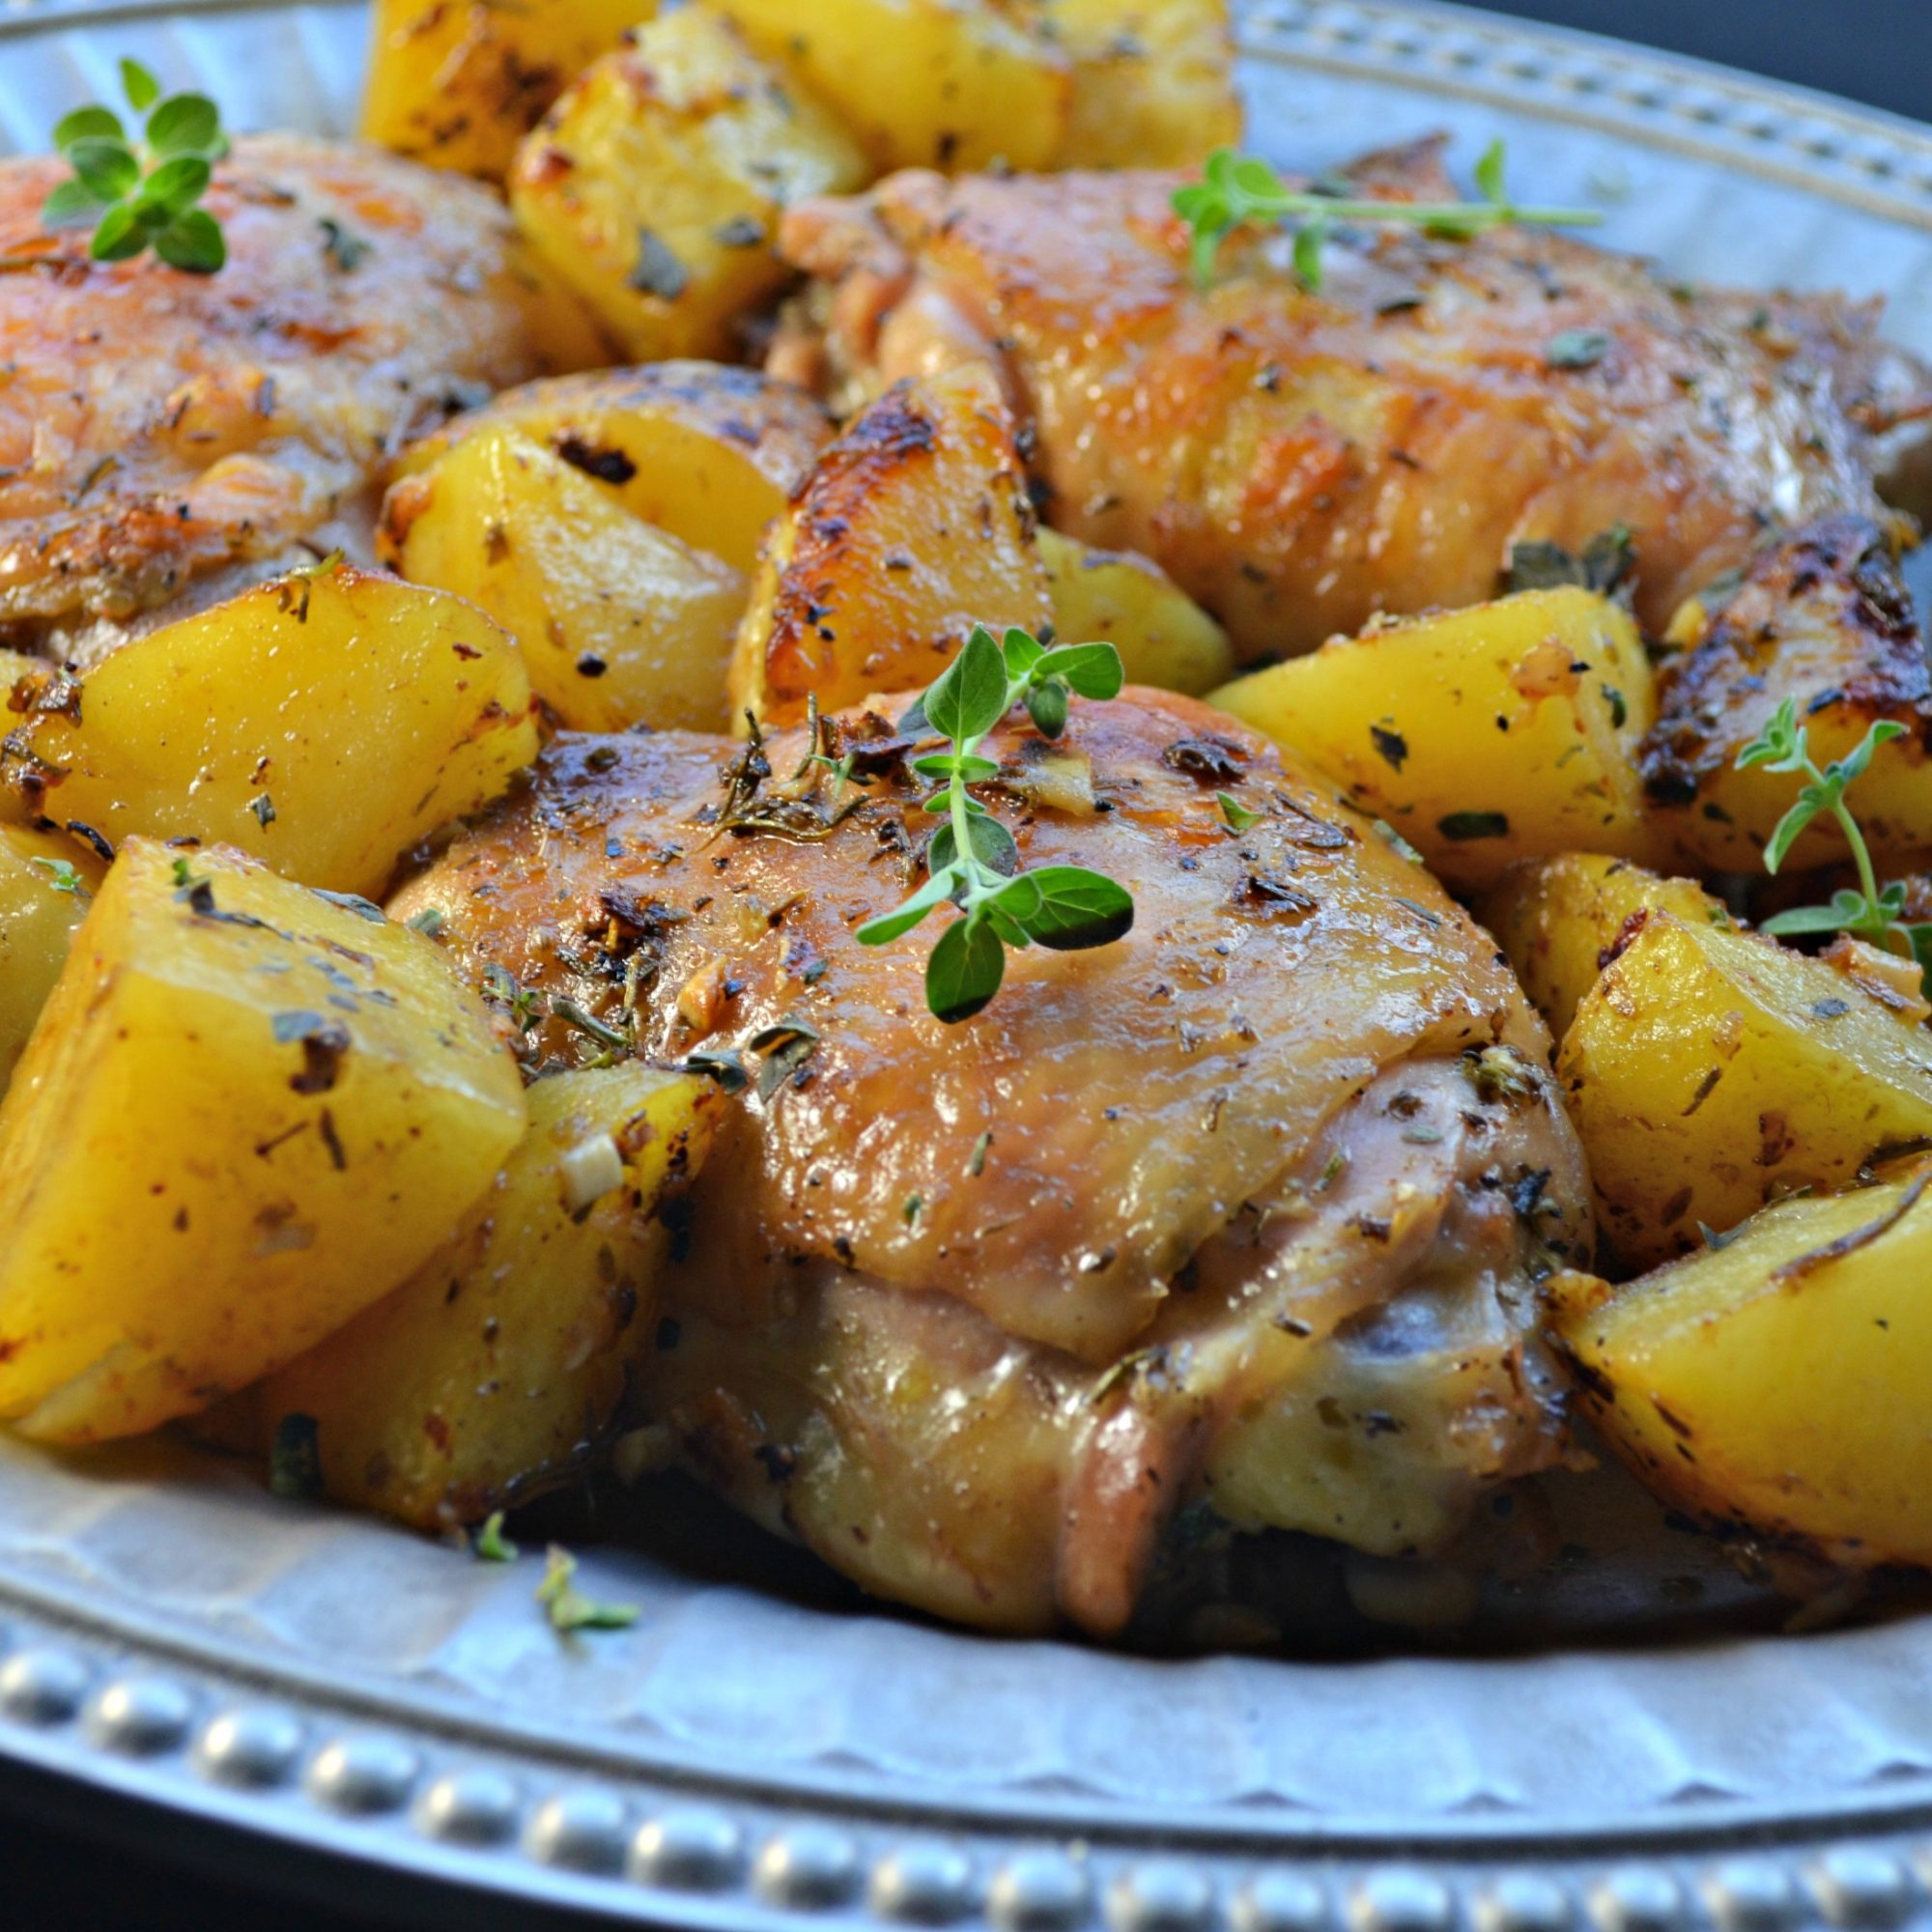 A platter of chicken thighs and roasted potatoes, garnished with fresh thyme